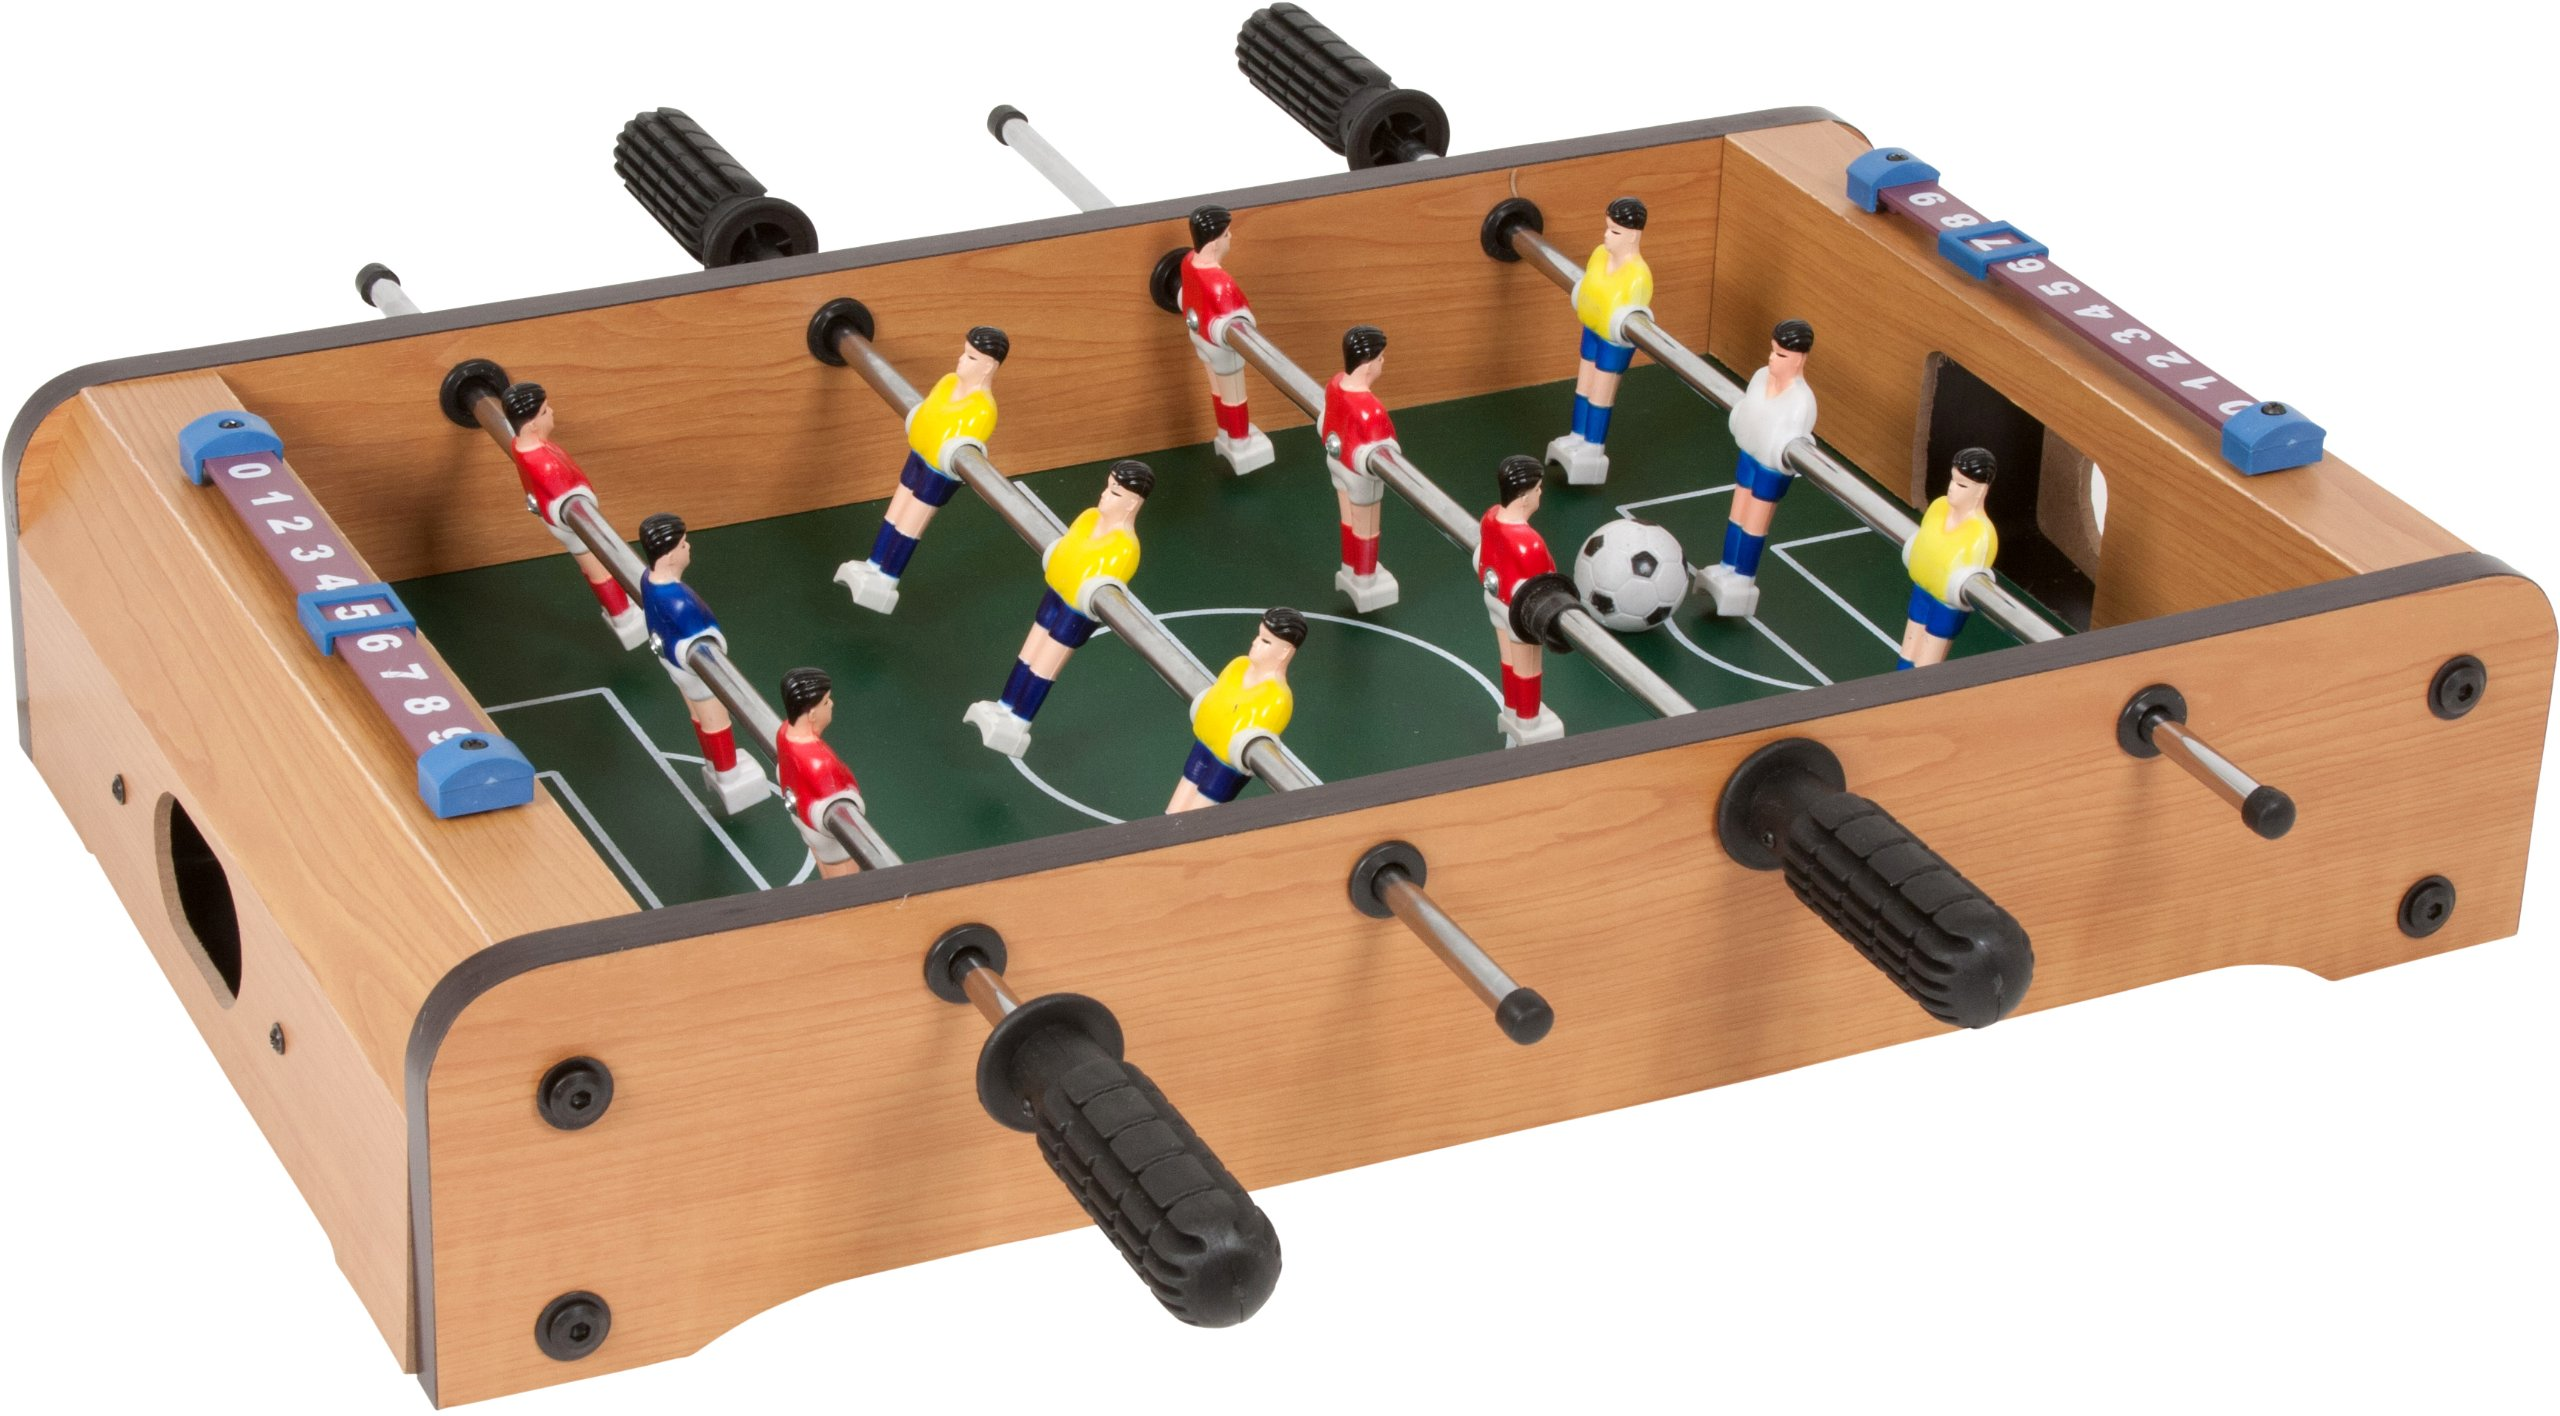 Trademark Portable Tabletop Foosball Table